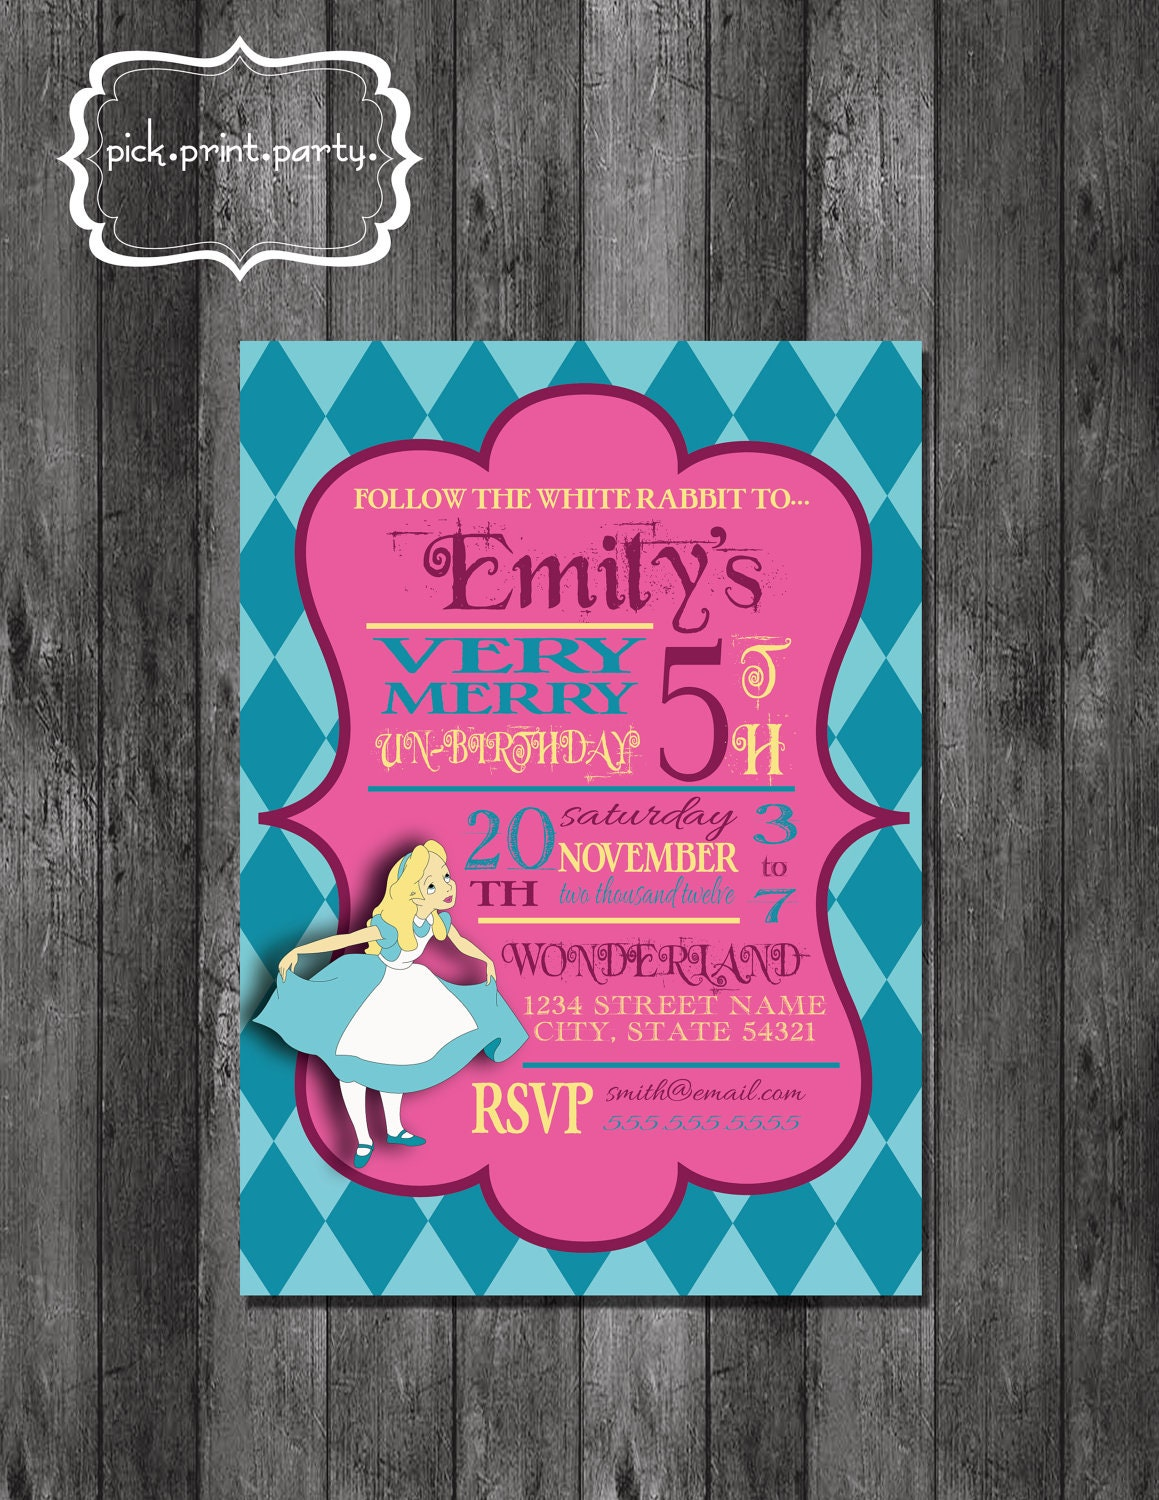 Alice in Wonderland Very Merry Un-Birthday Theme Party Invitation - DIY - Printable